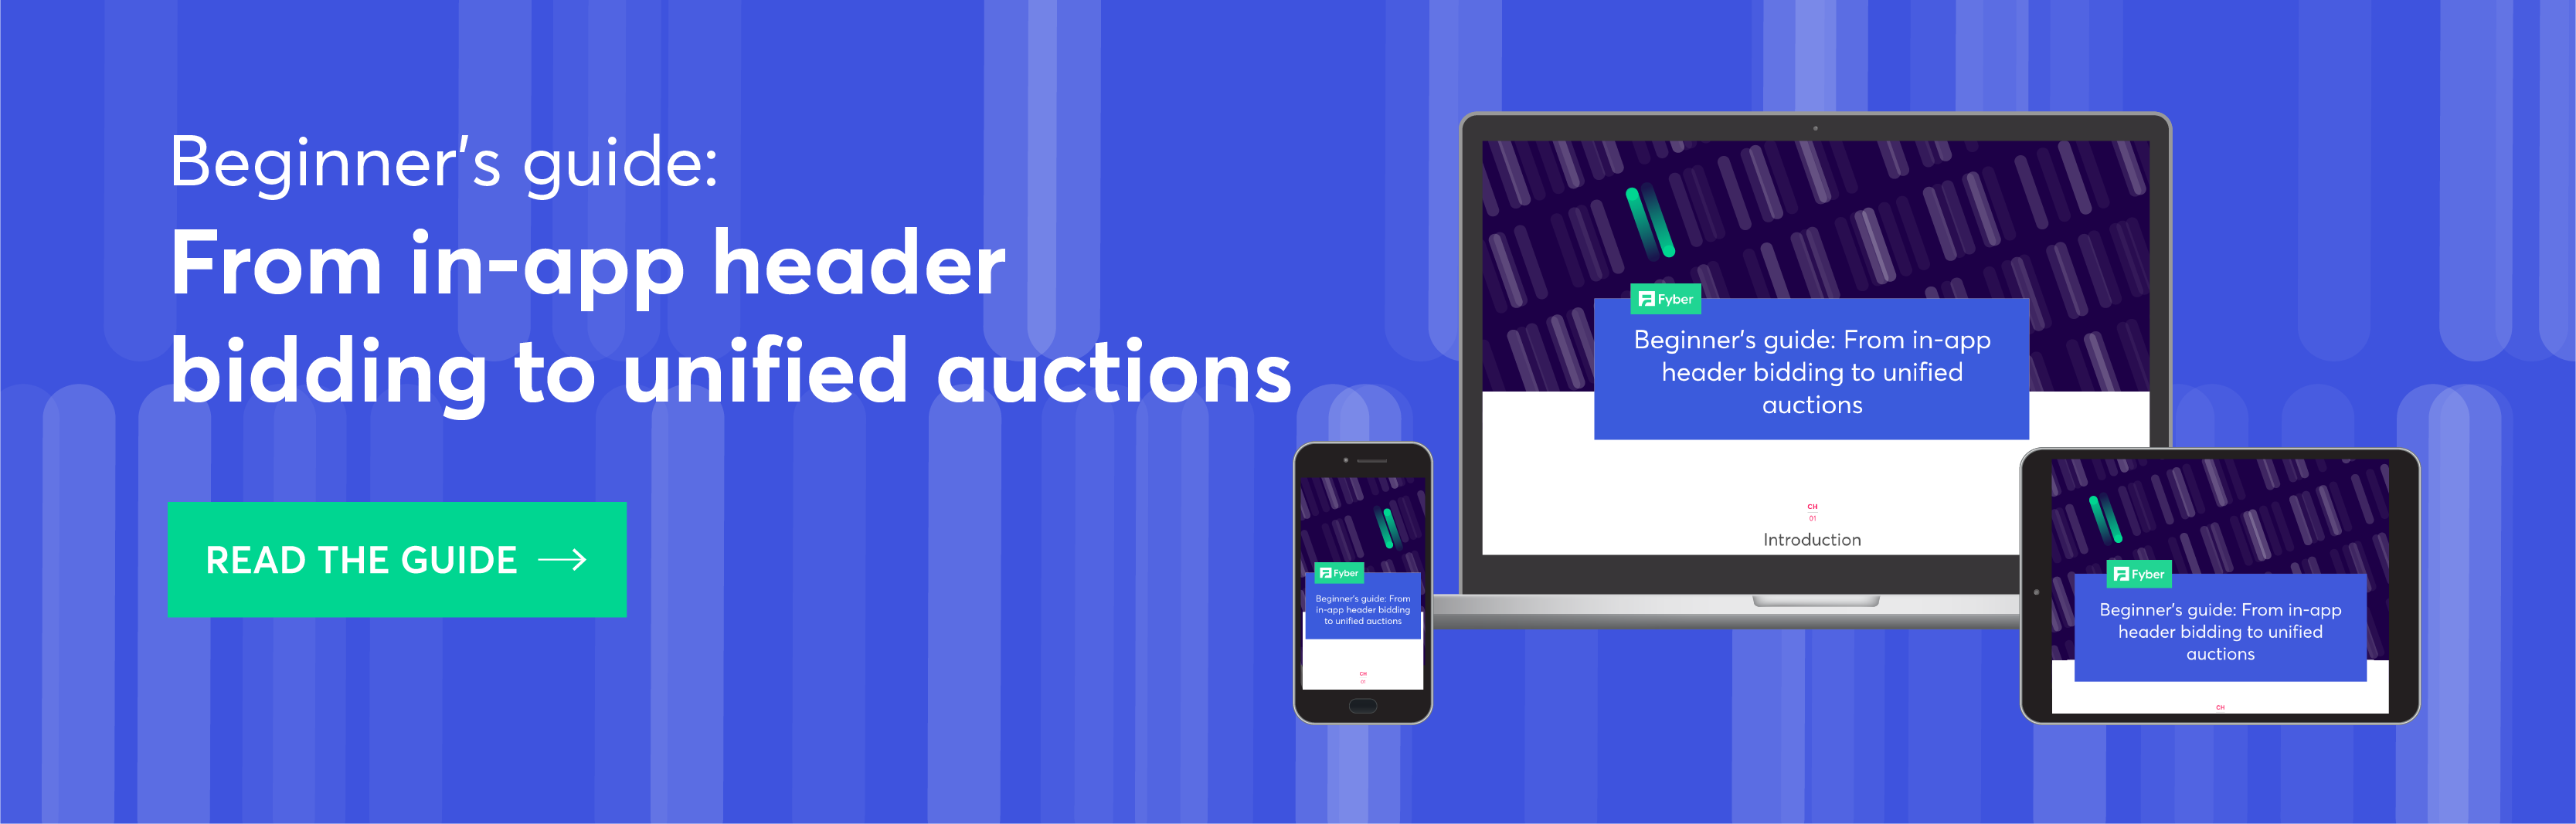 Fyber in-app header bidding unified auction promo in body blog post image